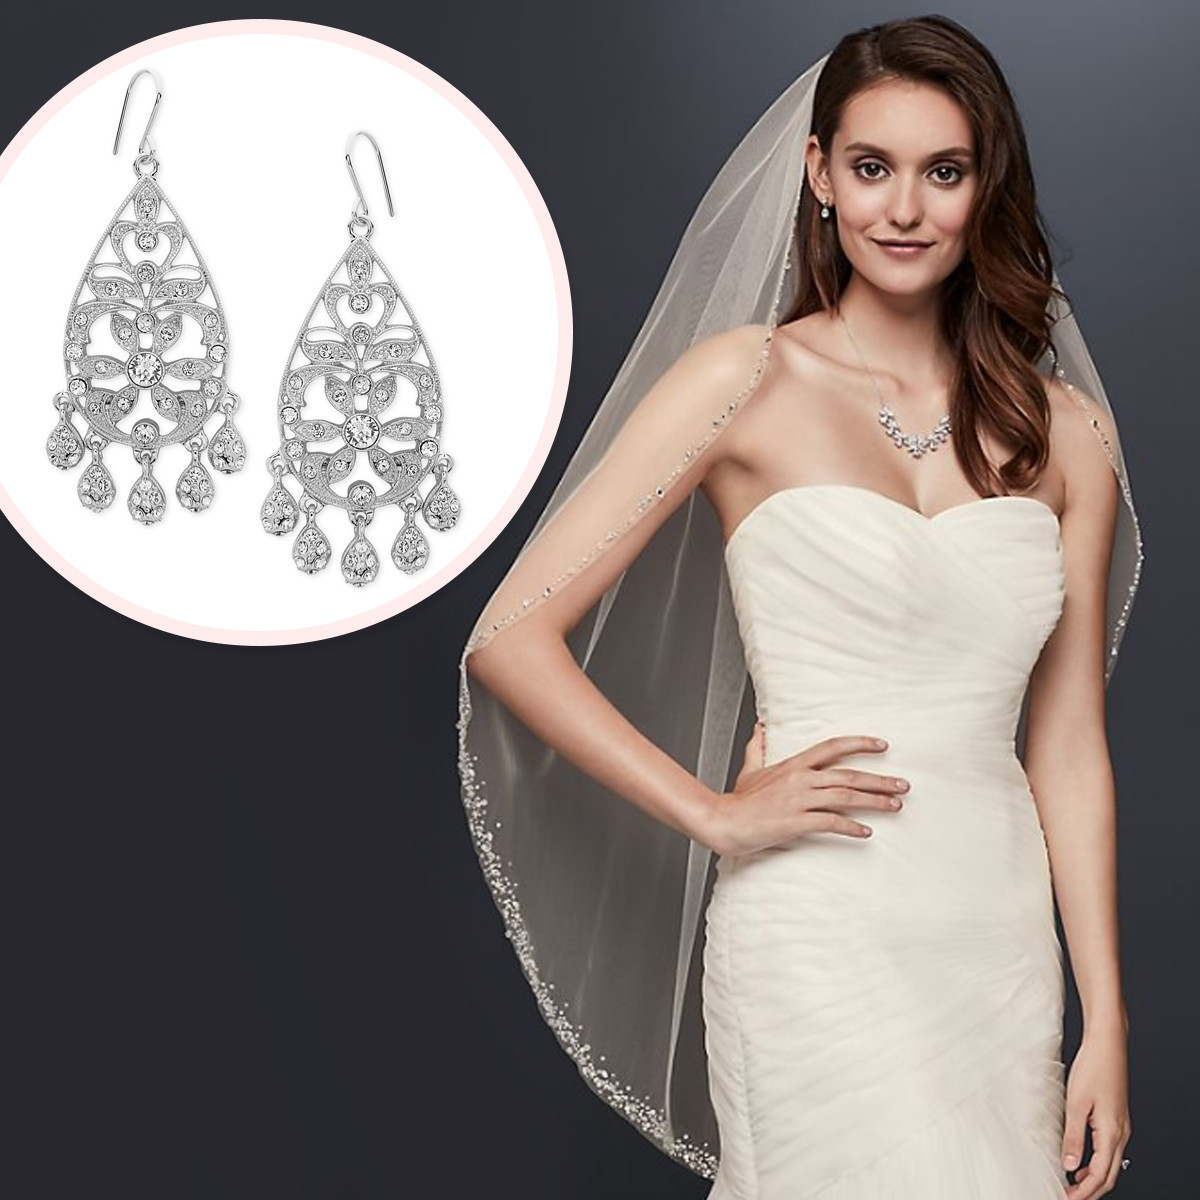 Bride next to diamond dangling earrings. photo